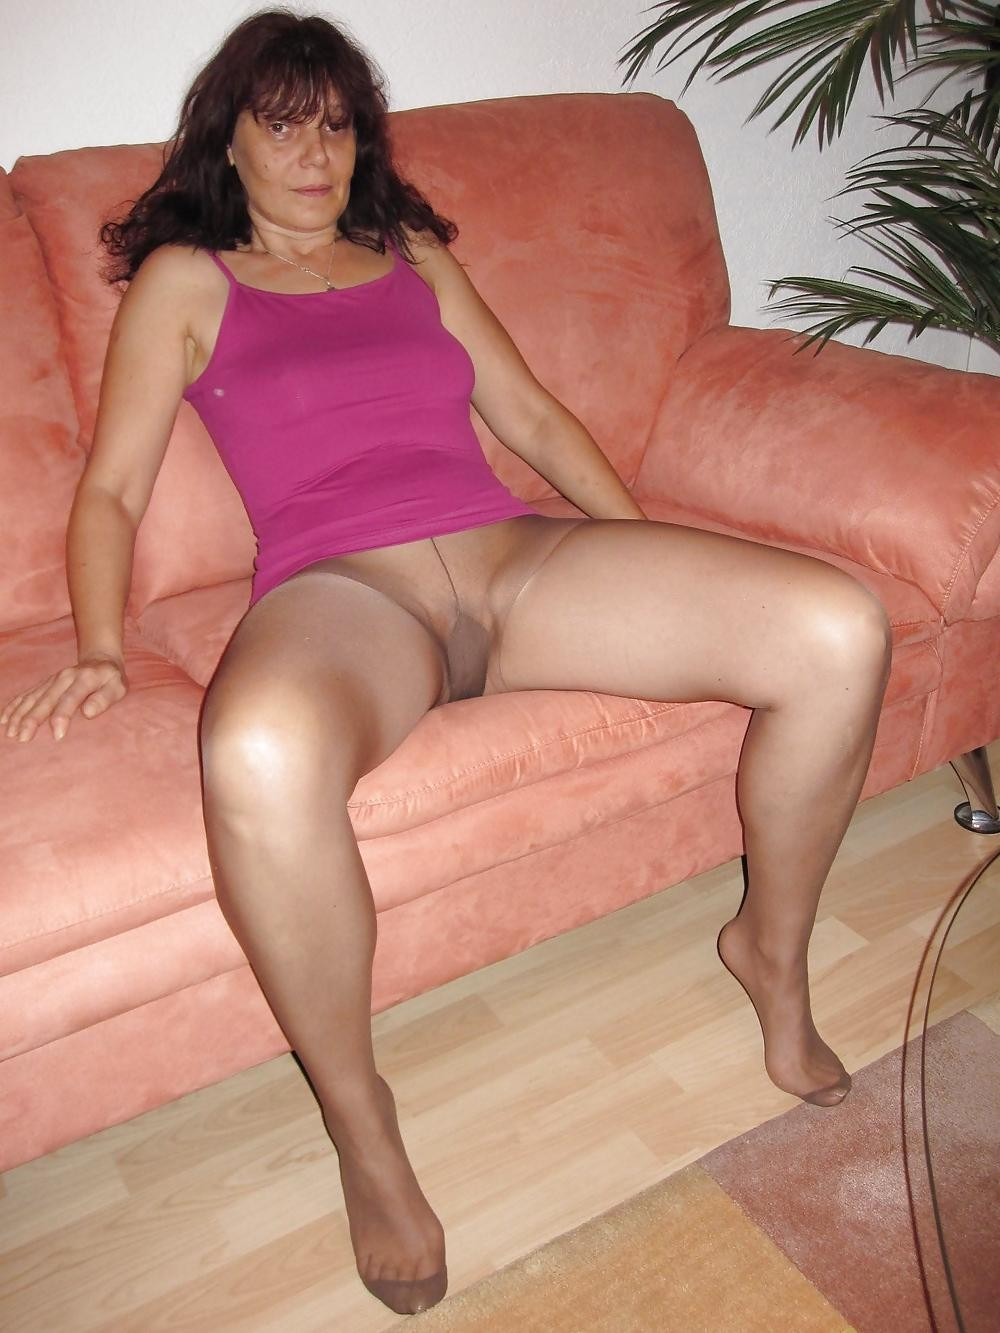 Consider, that Pantyhose amature porn video something